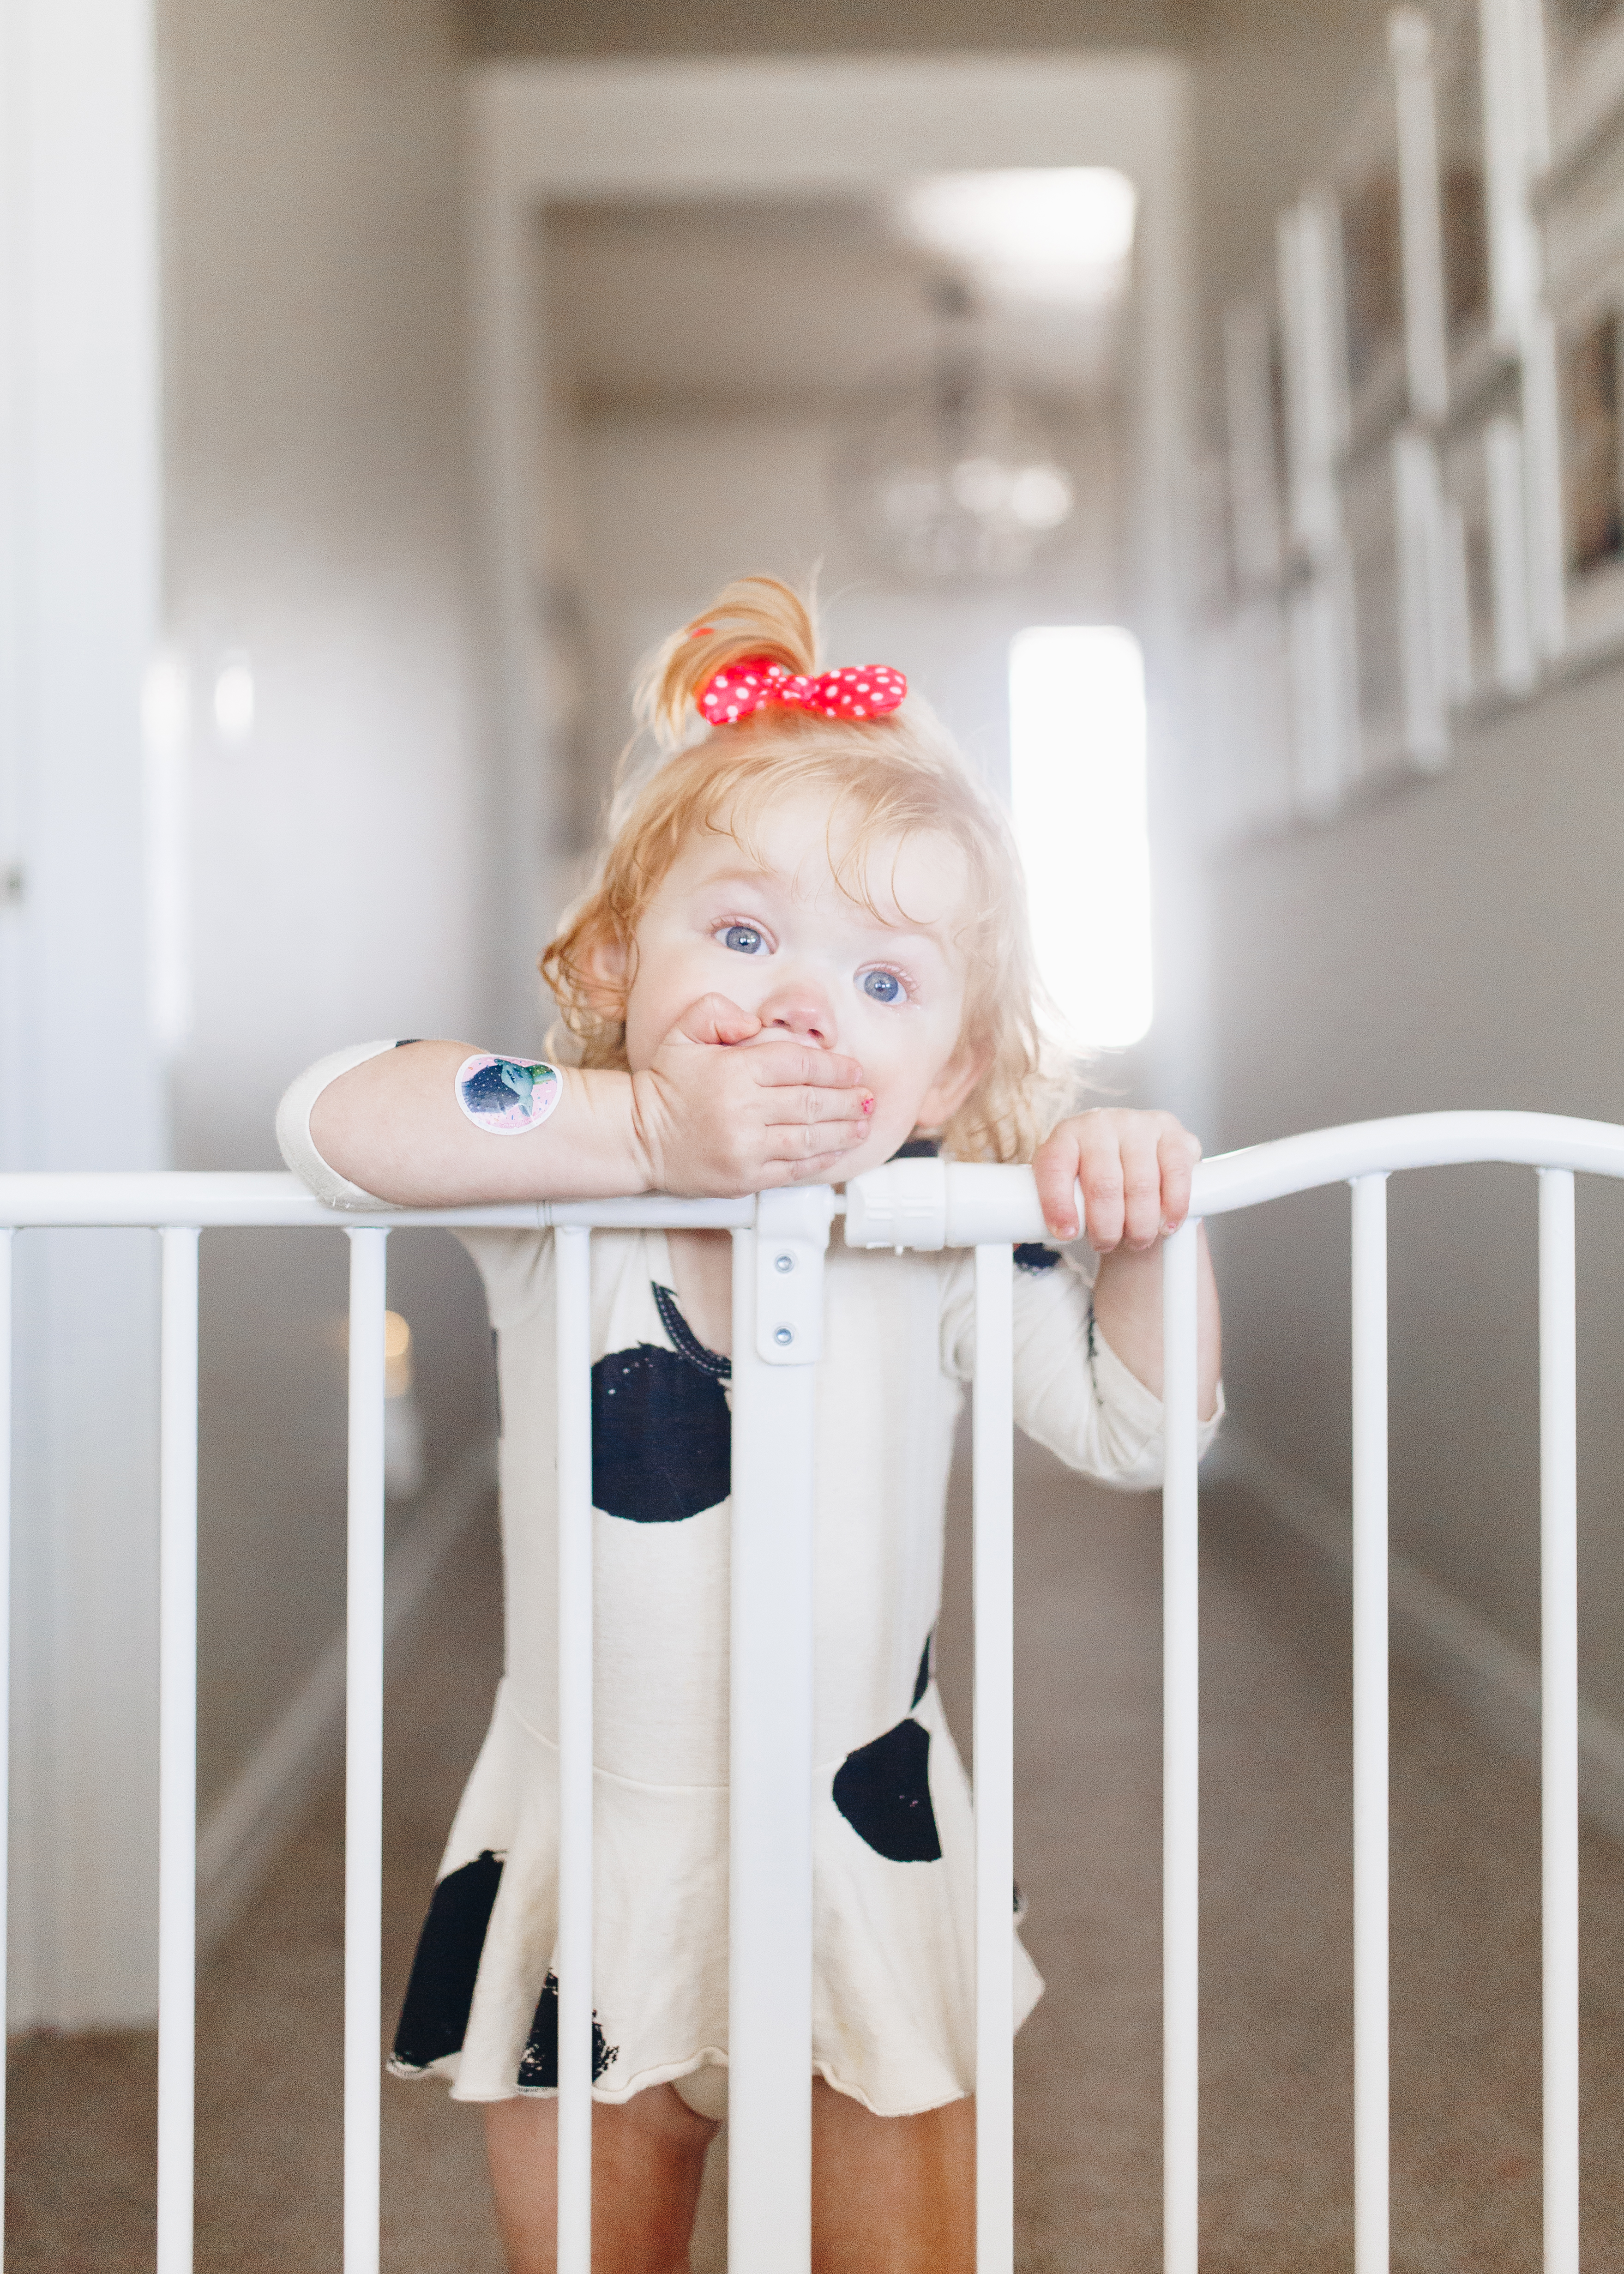 Toddler looking over baby gate